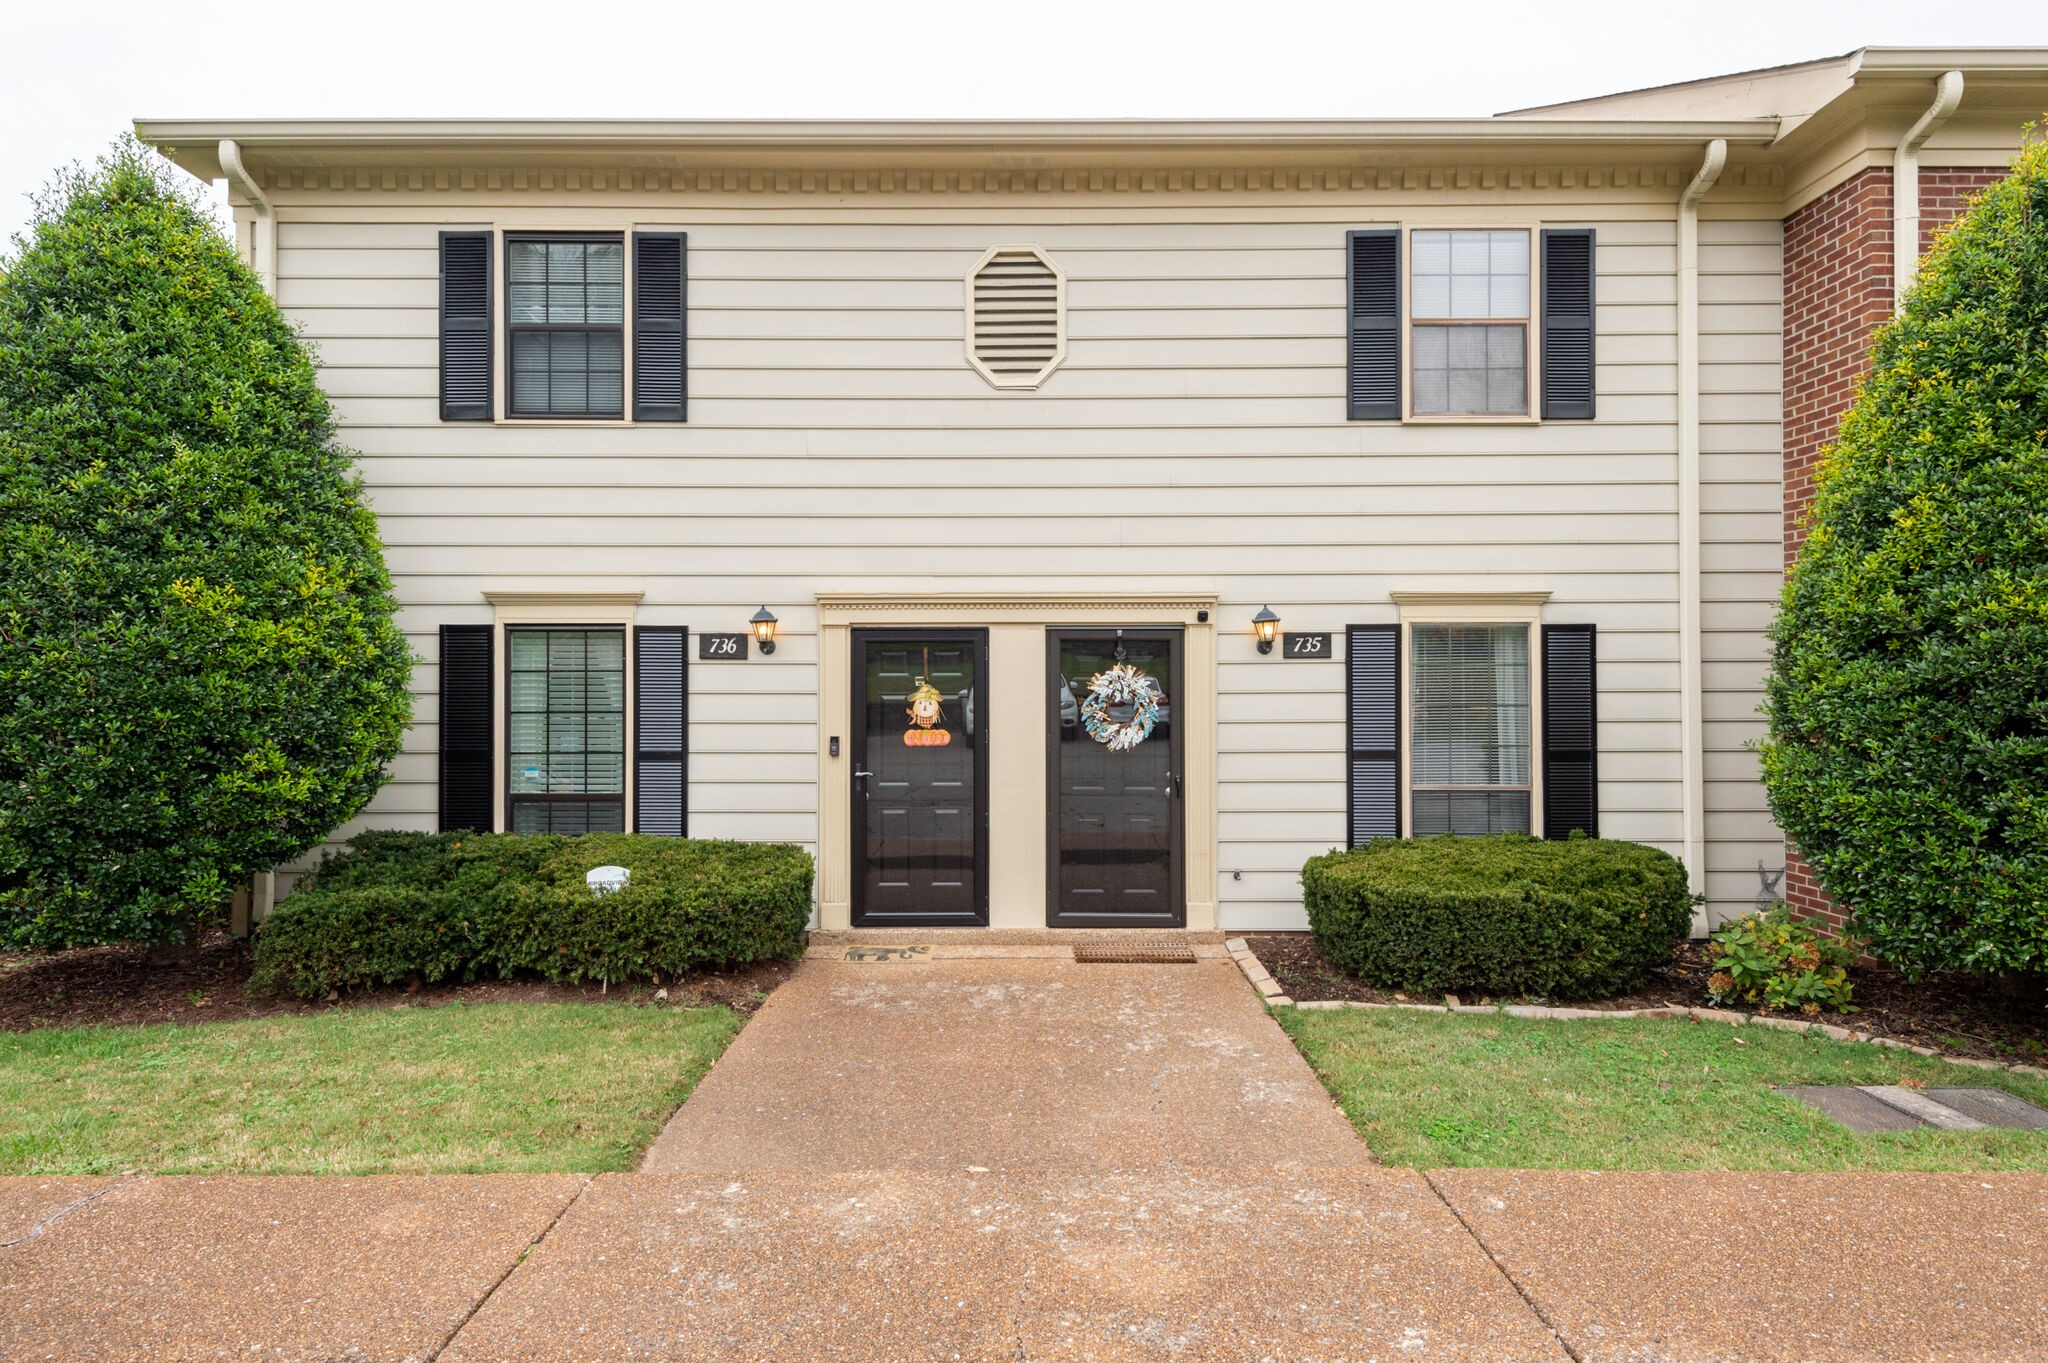 Popular Brentwood Trace in an AMAZING LOCATION off I-65 & OHB! Less than 3 minutes to great shopping...Target, Panera Bread, Longhorn & more! Updated Kitchen with QUARTZ COUNTERTOP, TILED BACKSPLASH, all like-new STAINLESS APPLIANCES stay, including washer & dryer! Smooth Ceilings, Hardwood & FP in Great Room! Privacy Fenced patio has beautiful view overlooking Mature Common Ground and Pool! MOVE-IN READY NOW! Call for your showing today!